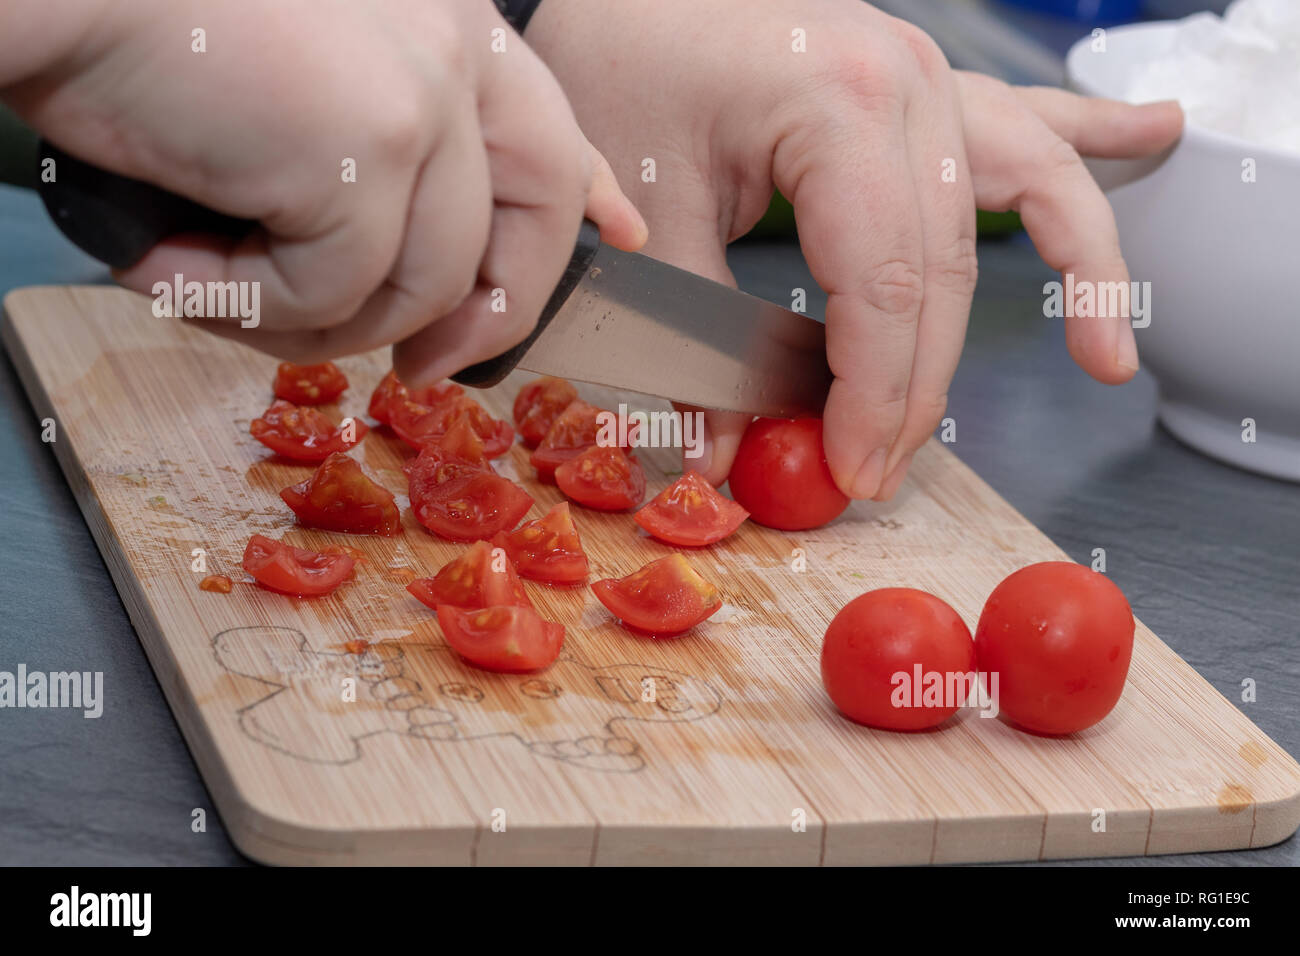 Woman's hands cutting tomato, behind fresh vegetables. - Stock Image